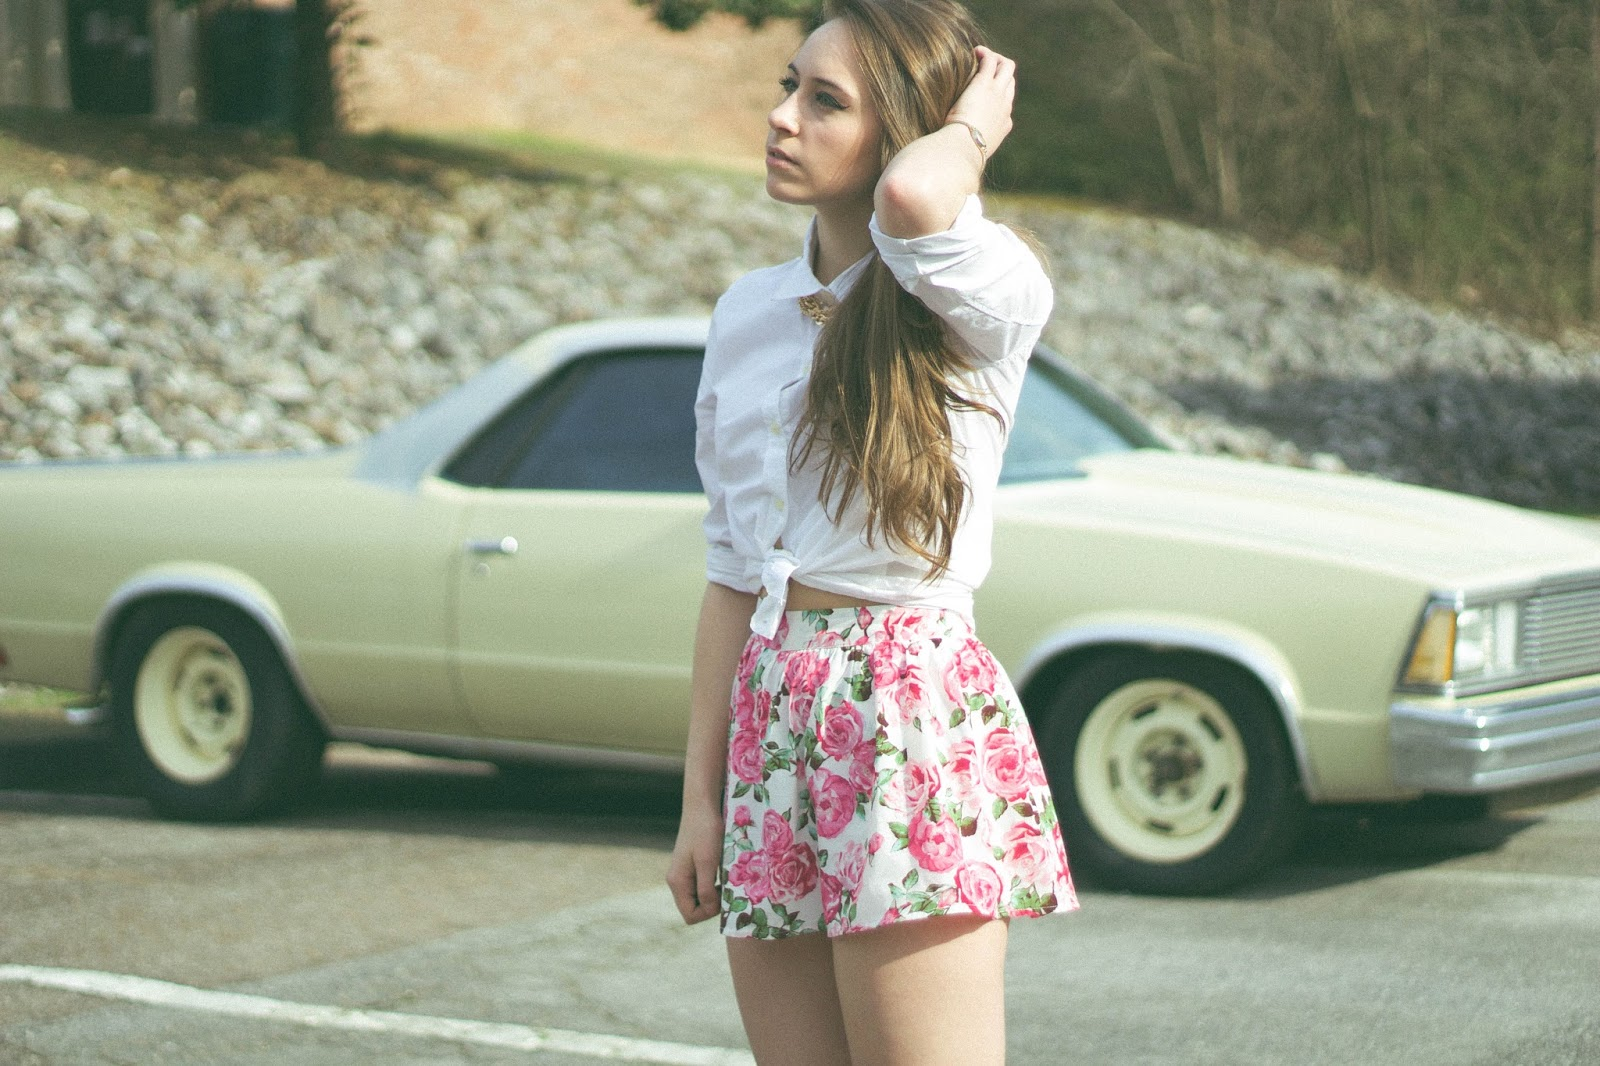 Vintage Inspired Outfit, lana del rey style, retro style, outfit, fashion blogger, feminine, femme fatale,forever 21 floral skort, gap white button up, el camino, film blogger, movies, style